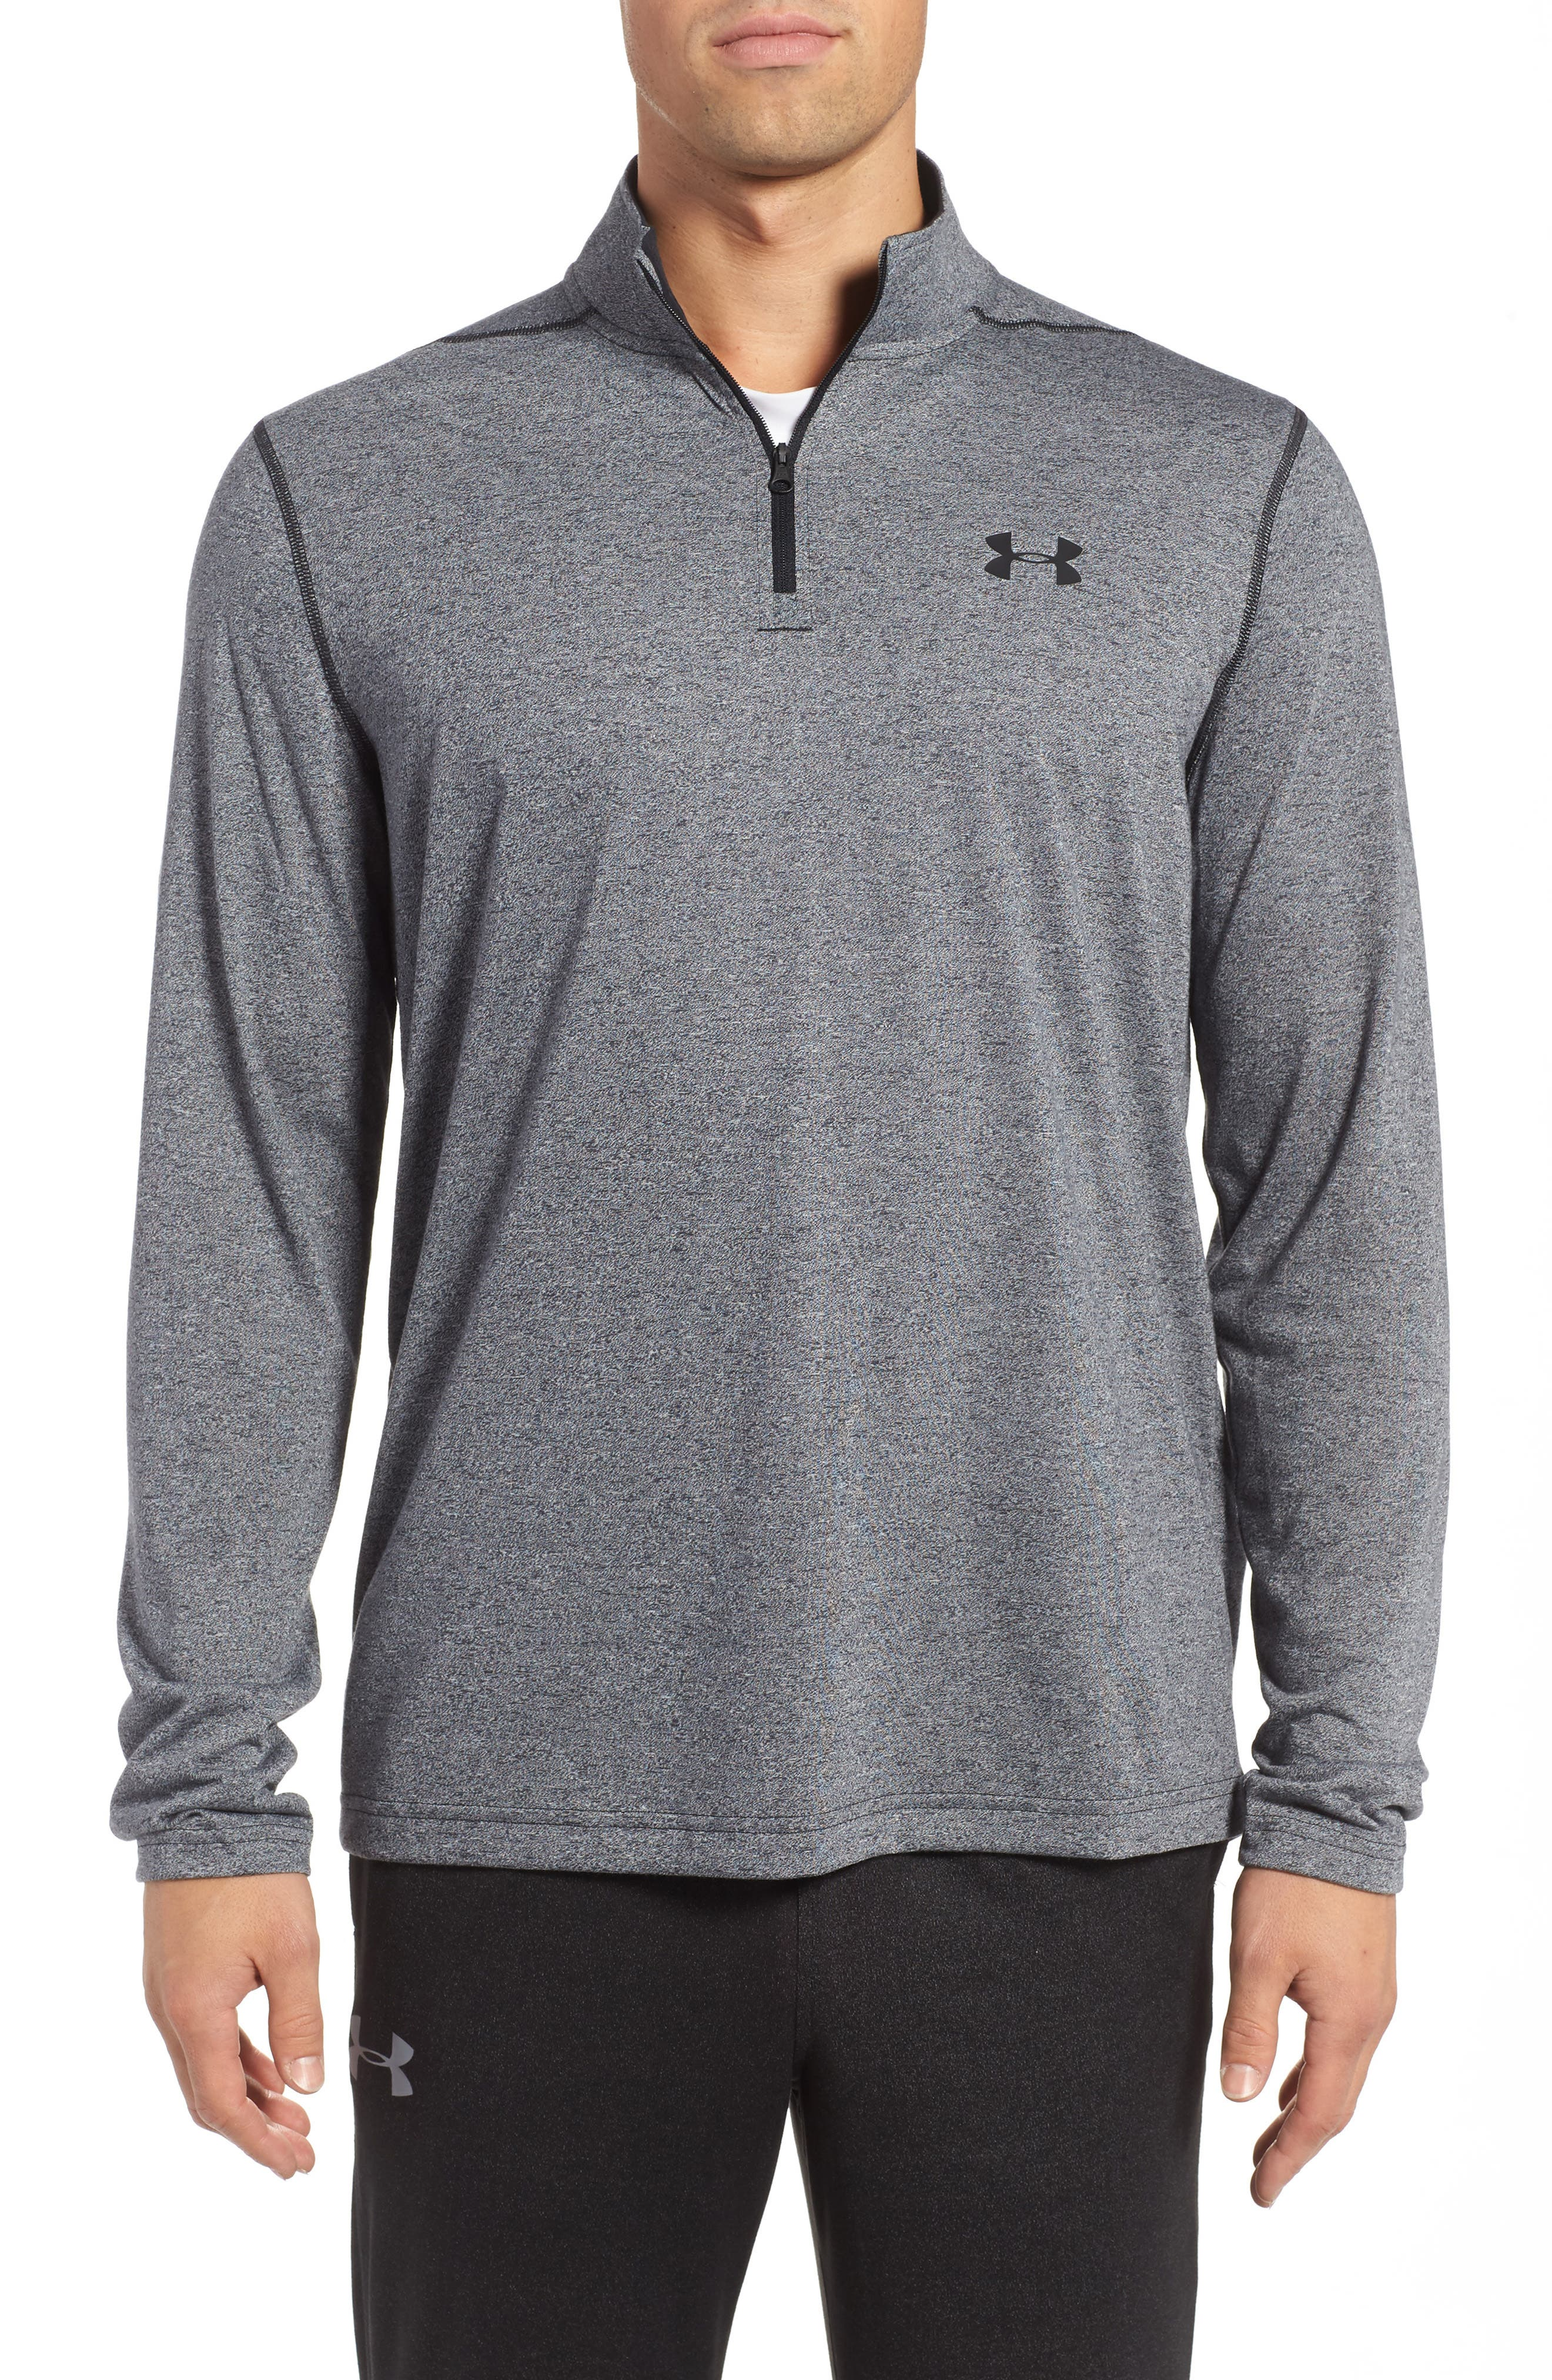 Under Armour Threadborne Quarter-Zip Performance Shirt